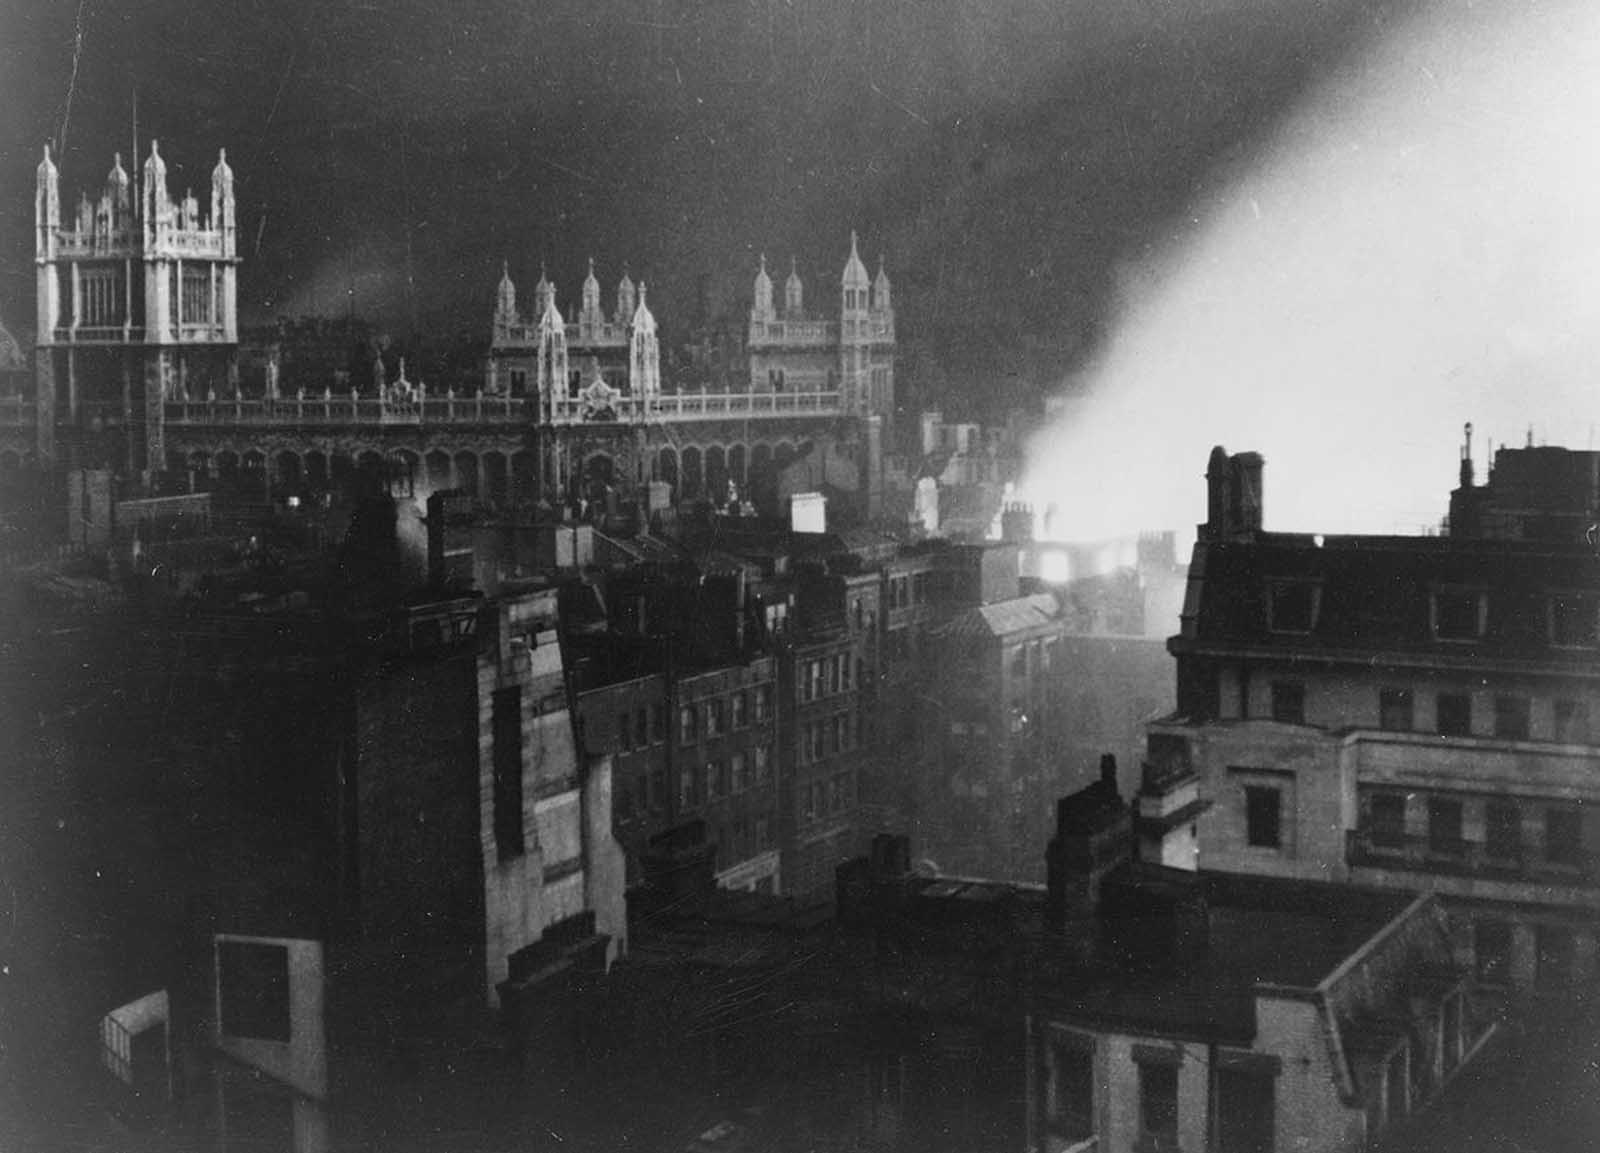 The Record Office in London, lit by flames ignited by a German air in 1940.